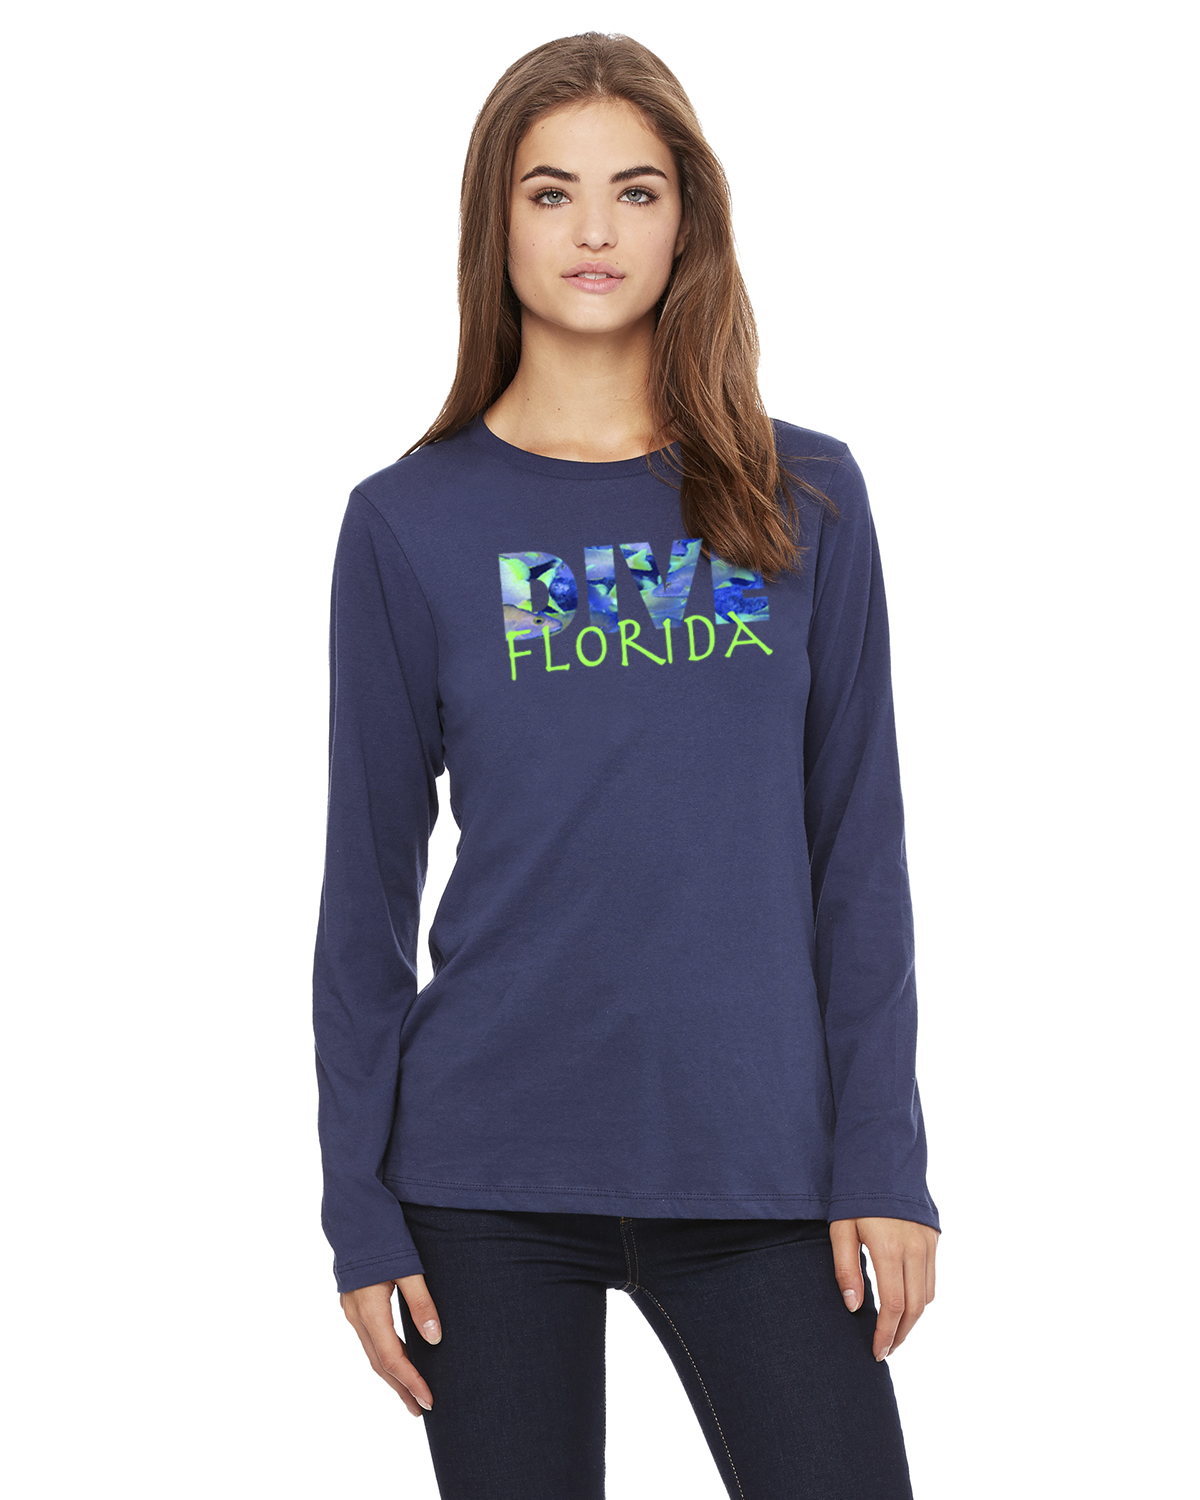 Women's Long Sleeve DIVE Florida T-Shirt (Navy)